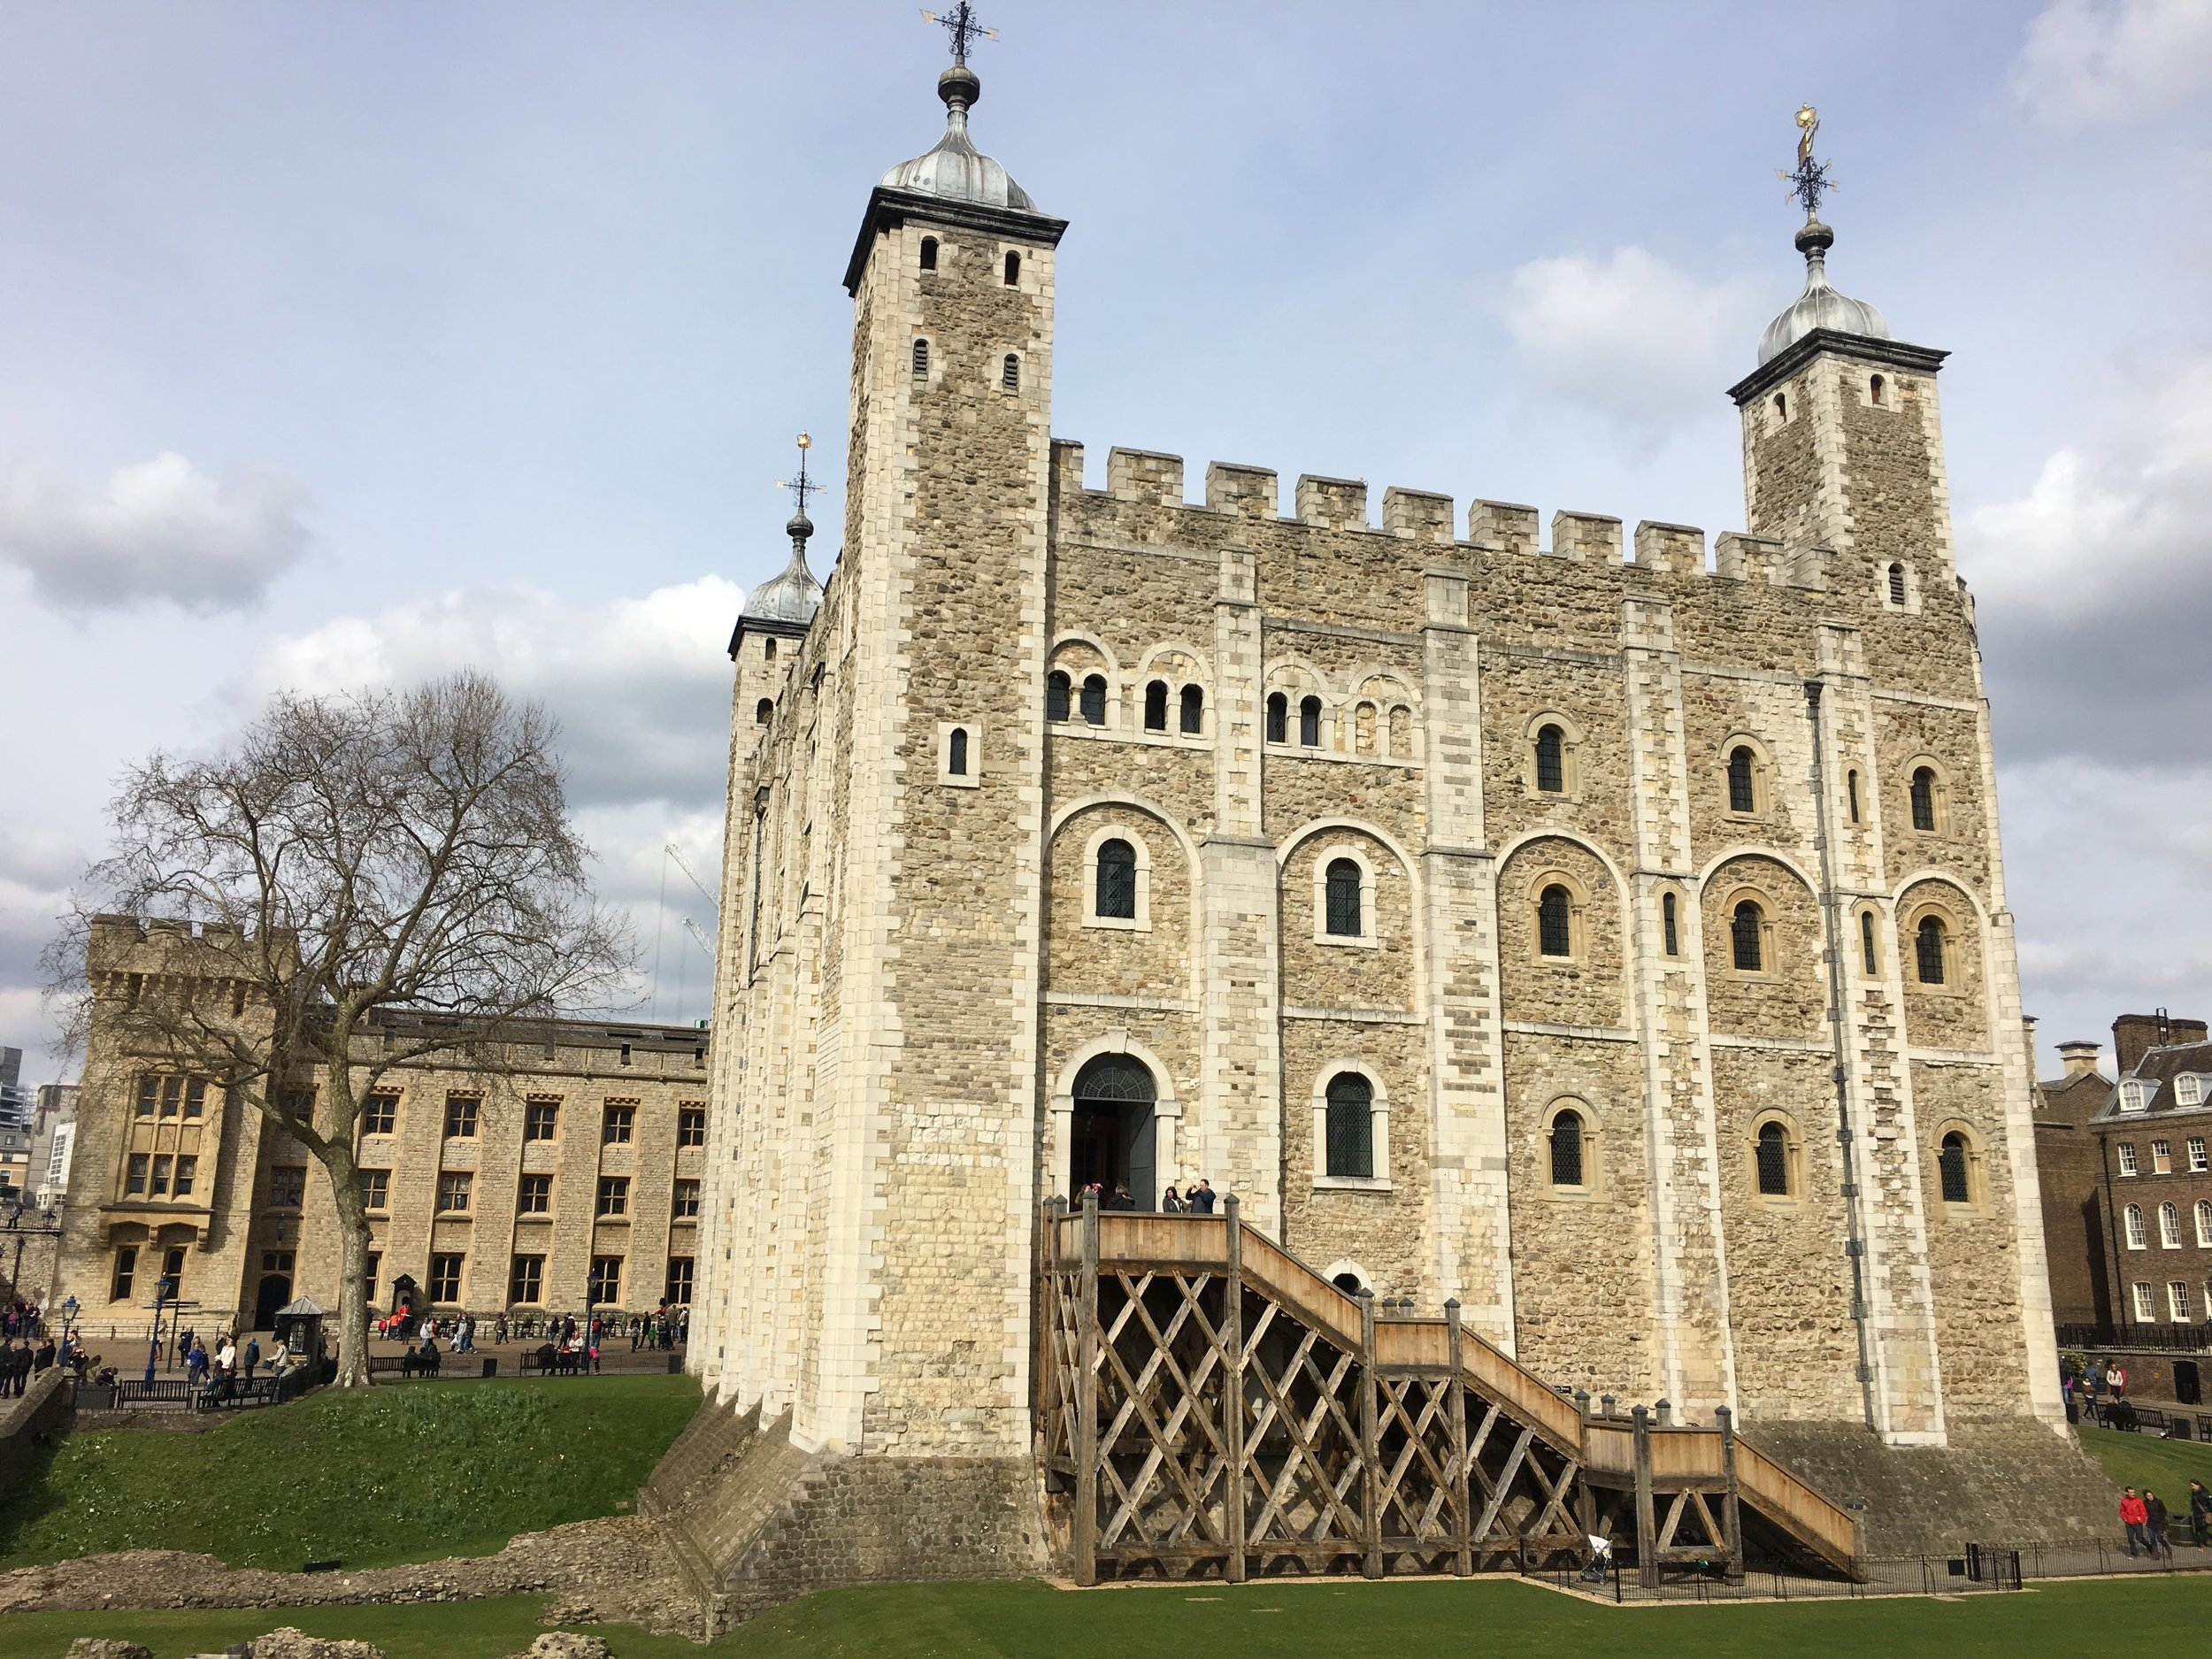 tower-of-london-city-of-london-private-tour-guide.jpg